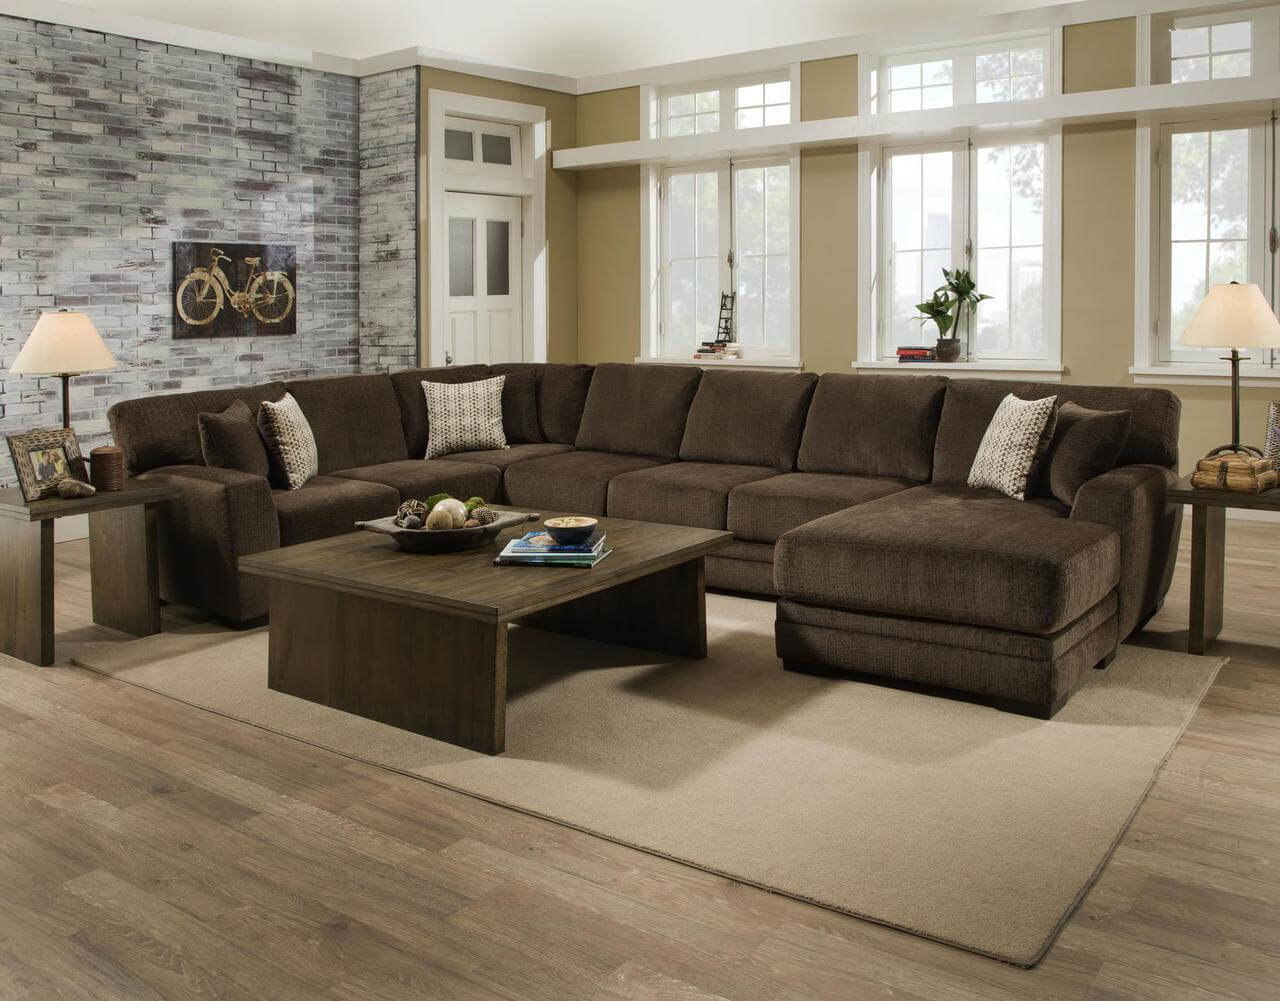 WAREHOUSE PRICE: $1699.99 | MONTHLY PAYMENT $35 O.A.C